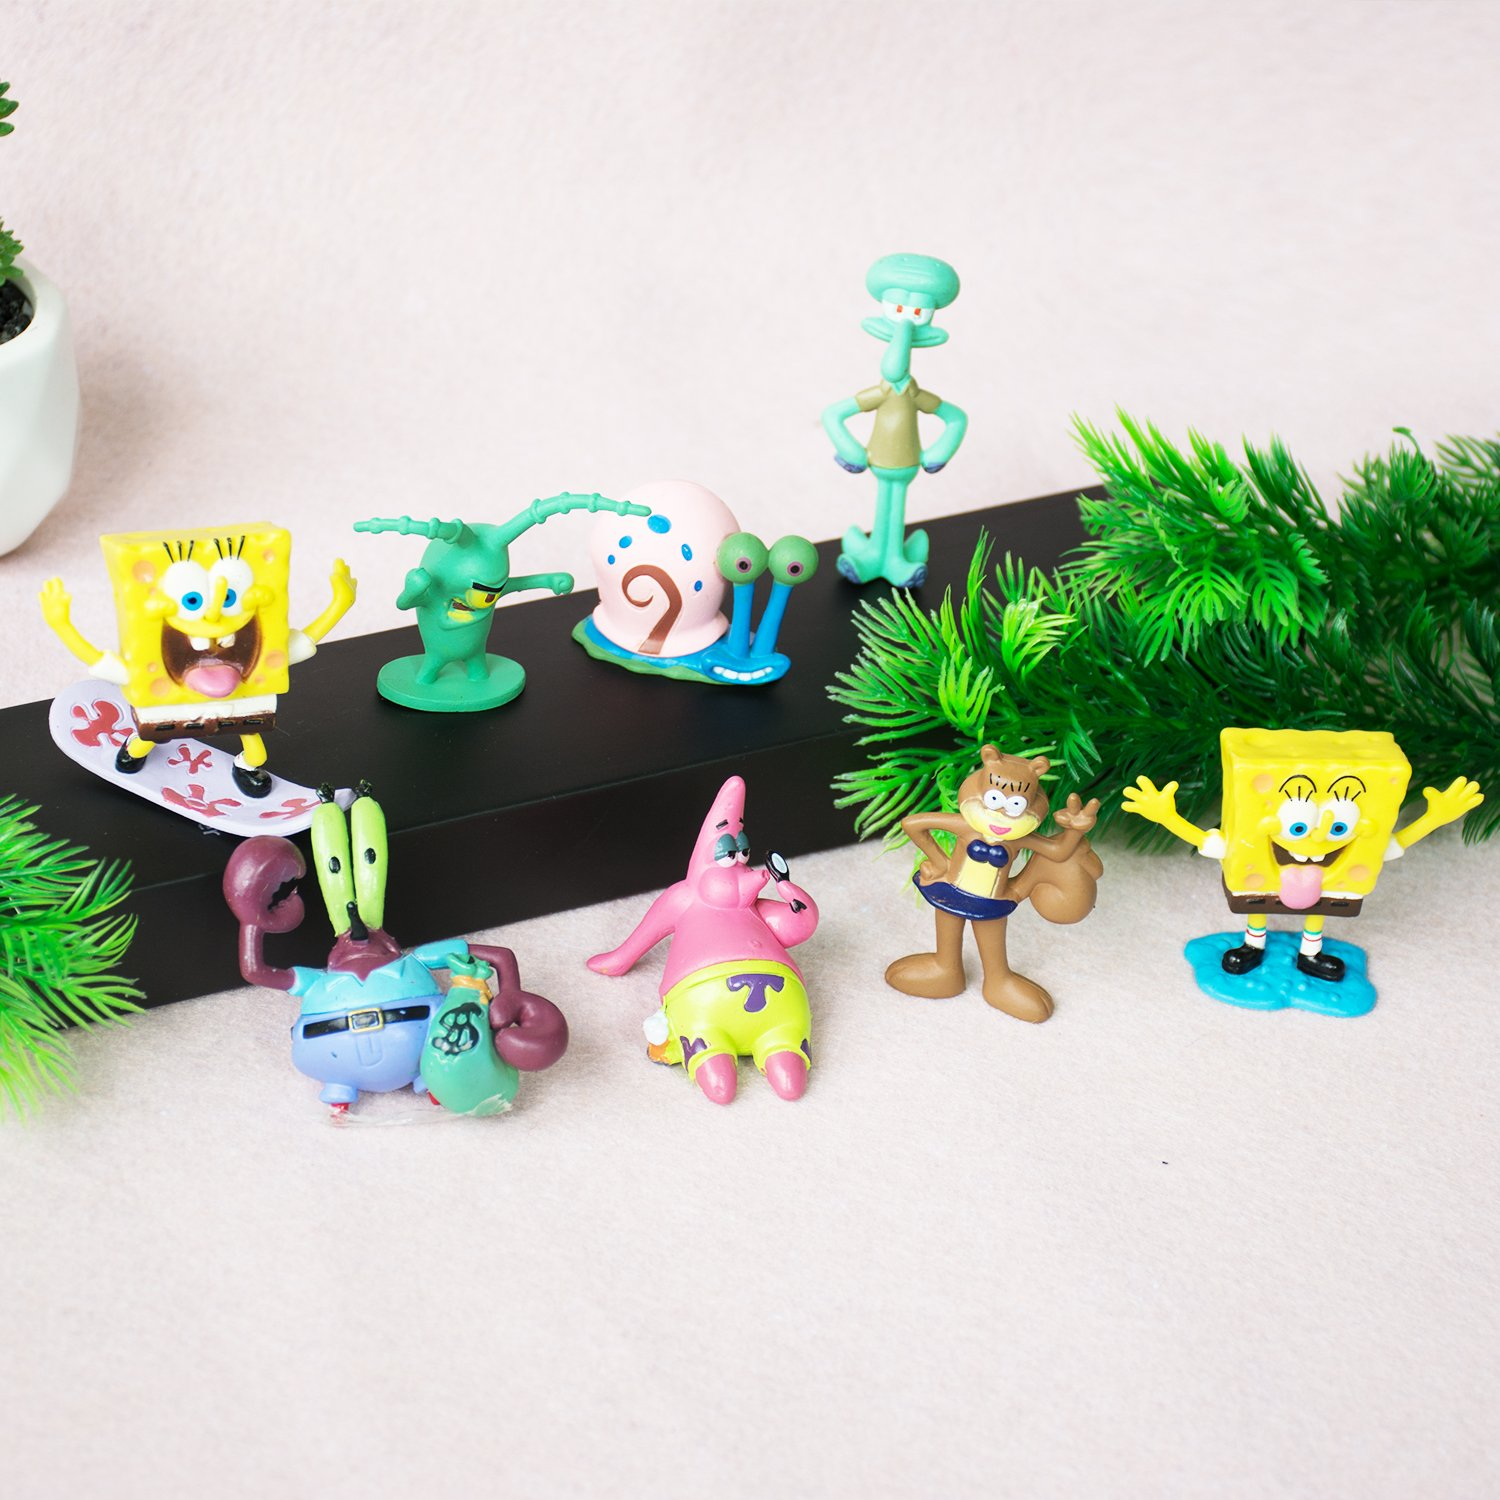 MagicDesign Spongebob 8 Piece Collection Party Decorations in Nice Package …